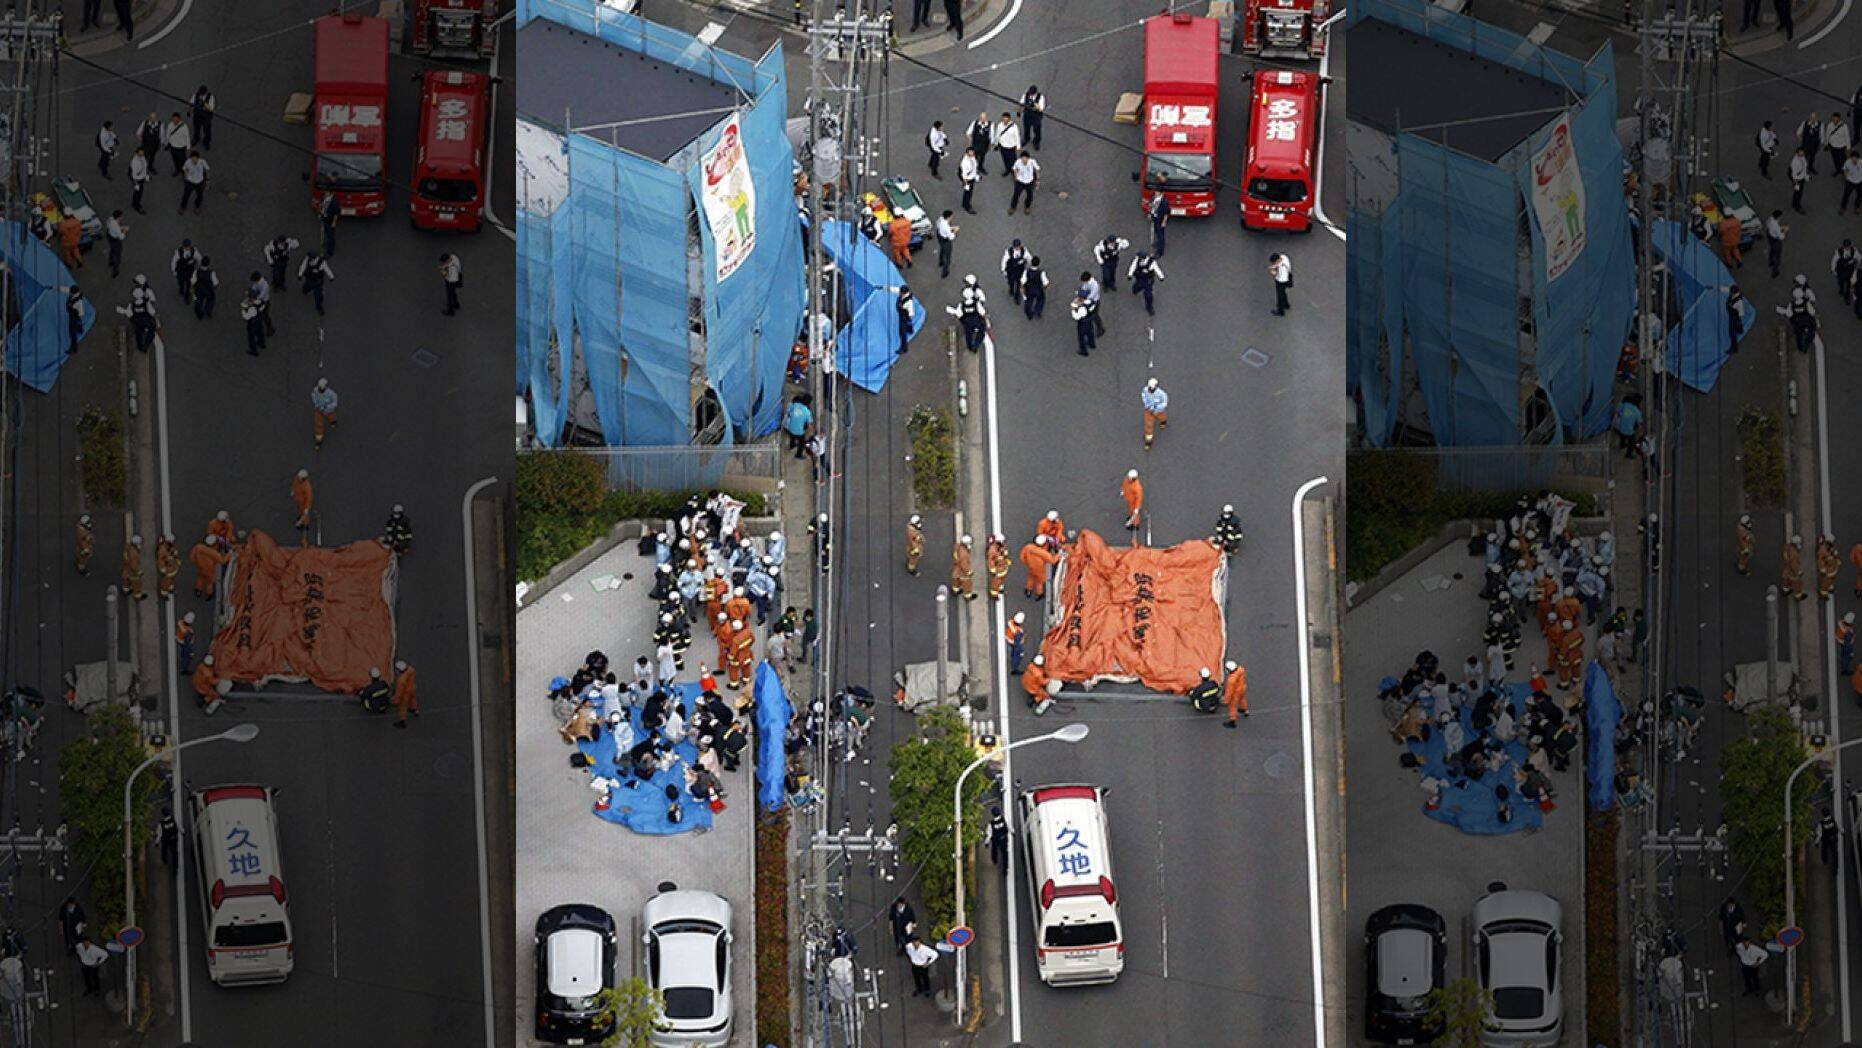 Two dead, 16 wounded after stabbing attack in Japan